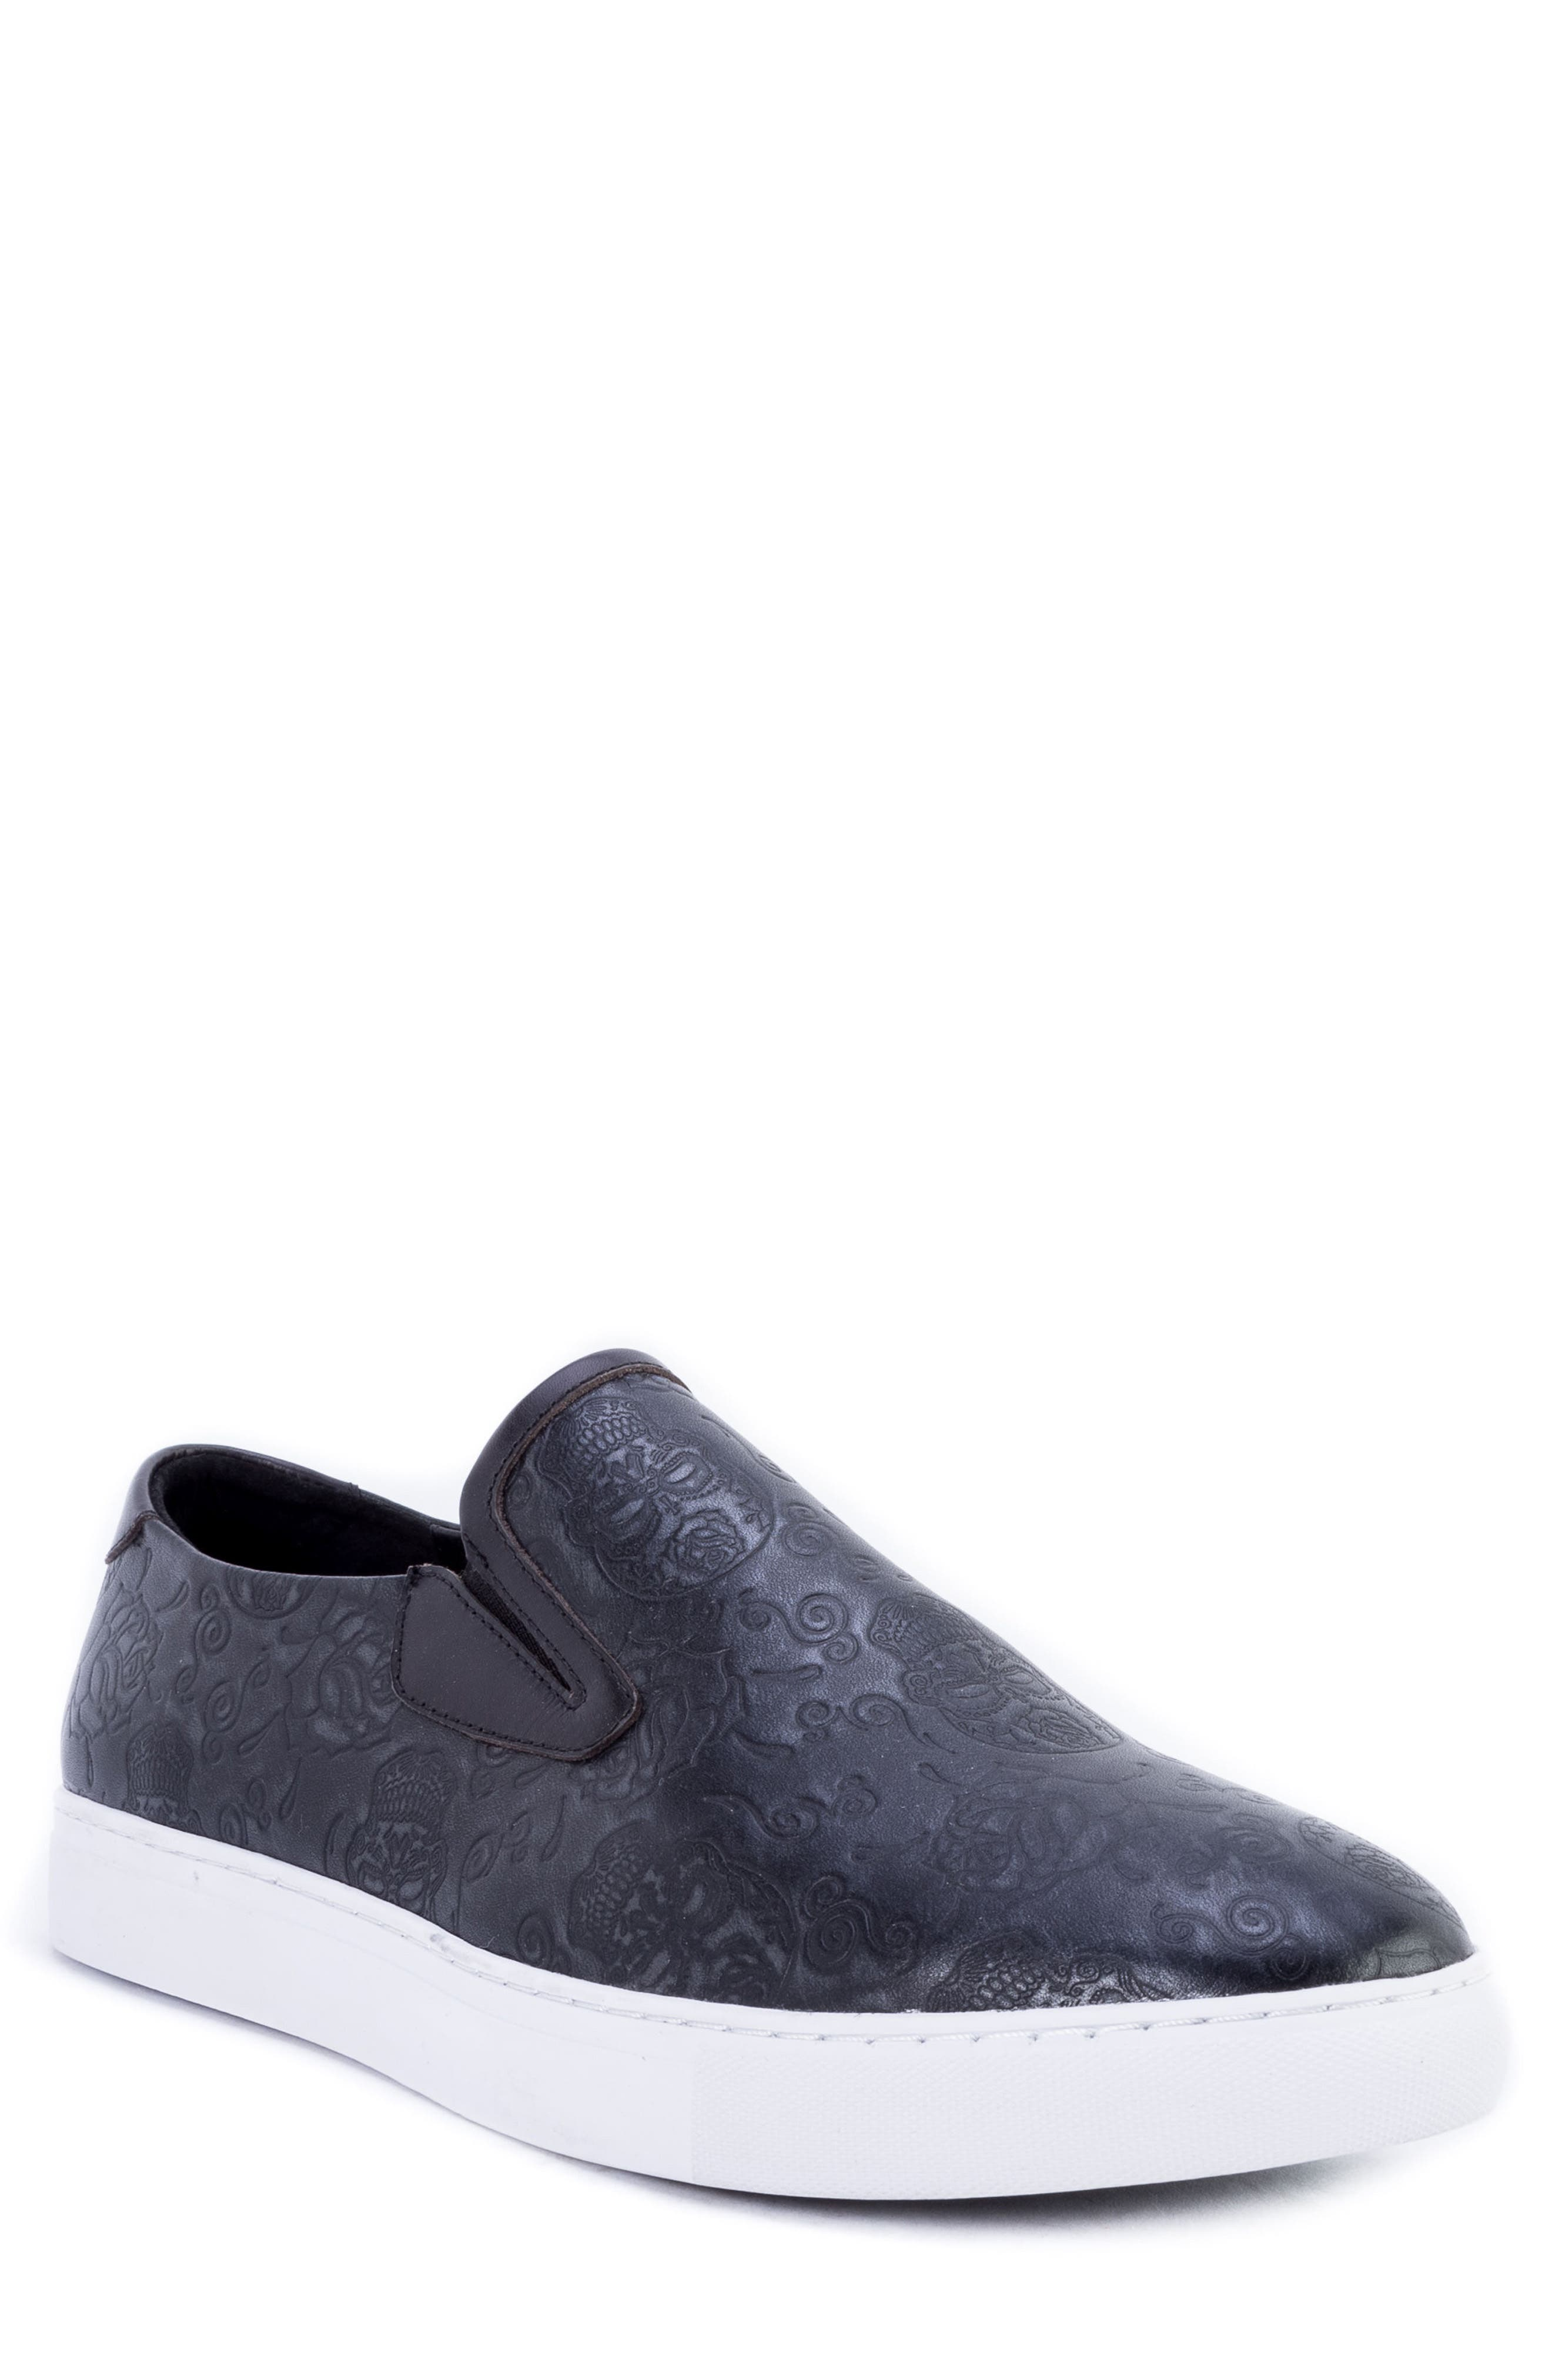 Baxter Embossed Slip-On Sneaker,                         Main,                         color, BLACK LEATHER